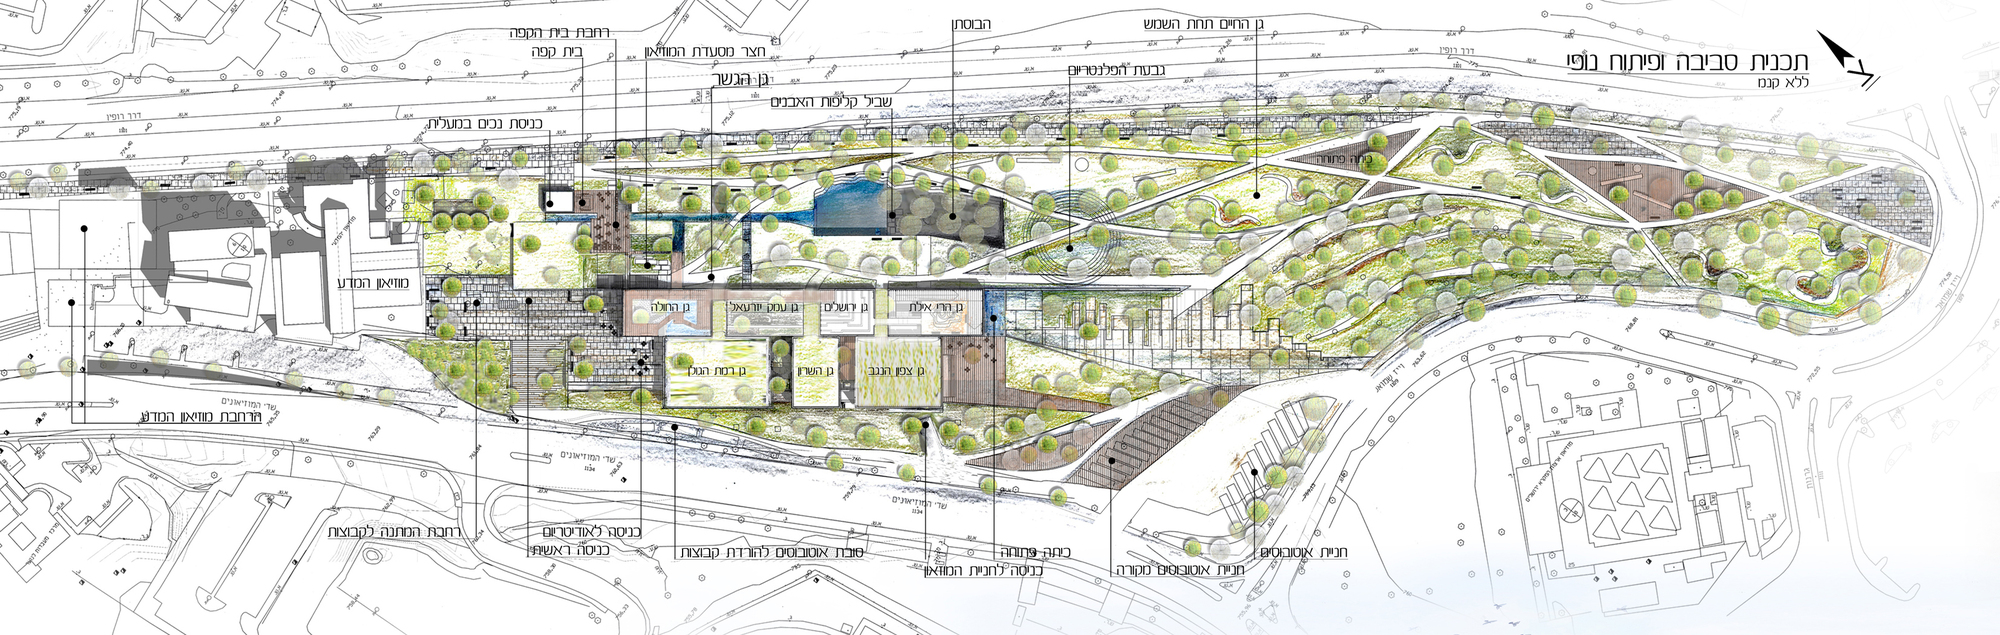 Architecture photography museum of nature and science - Site plan architecture ...